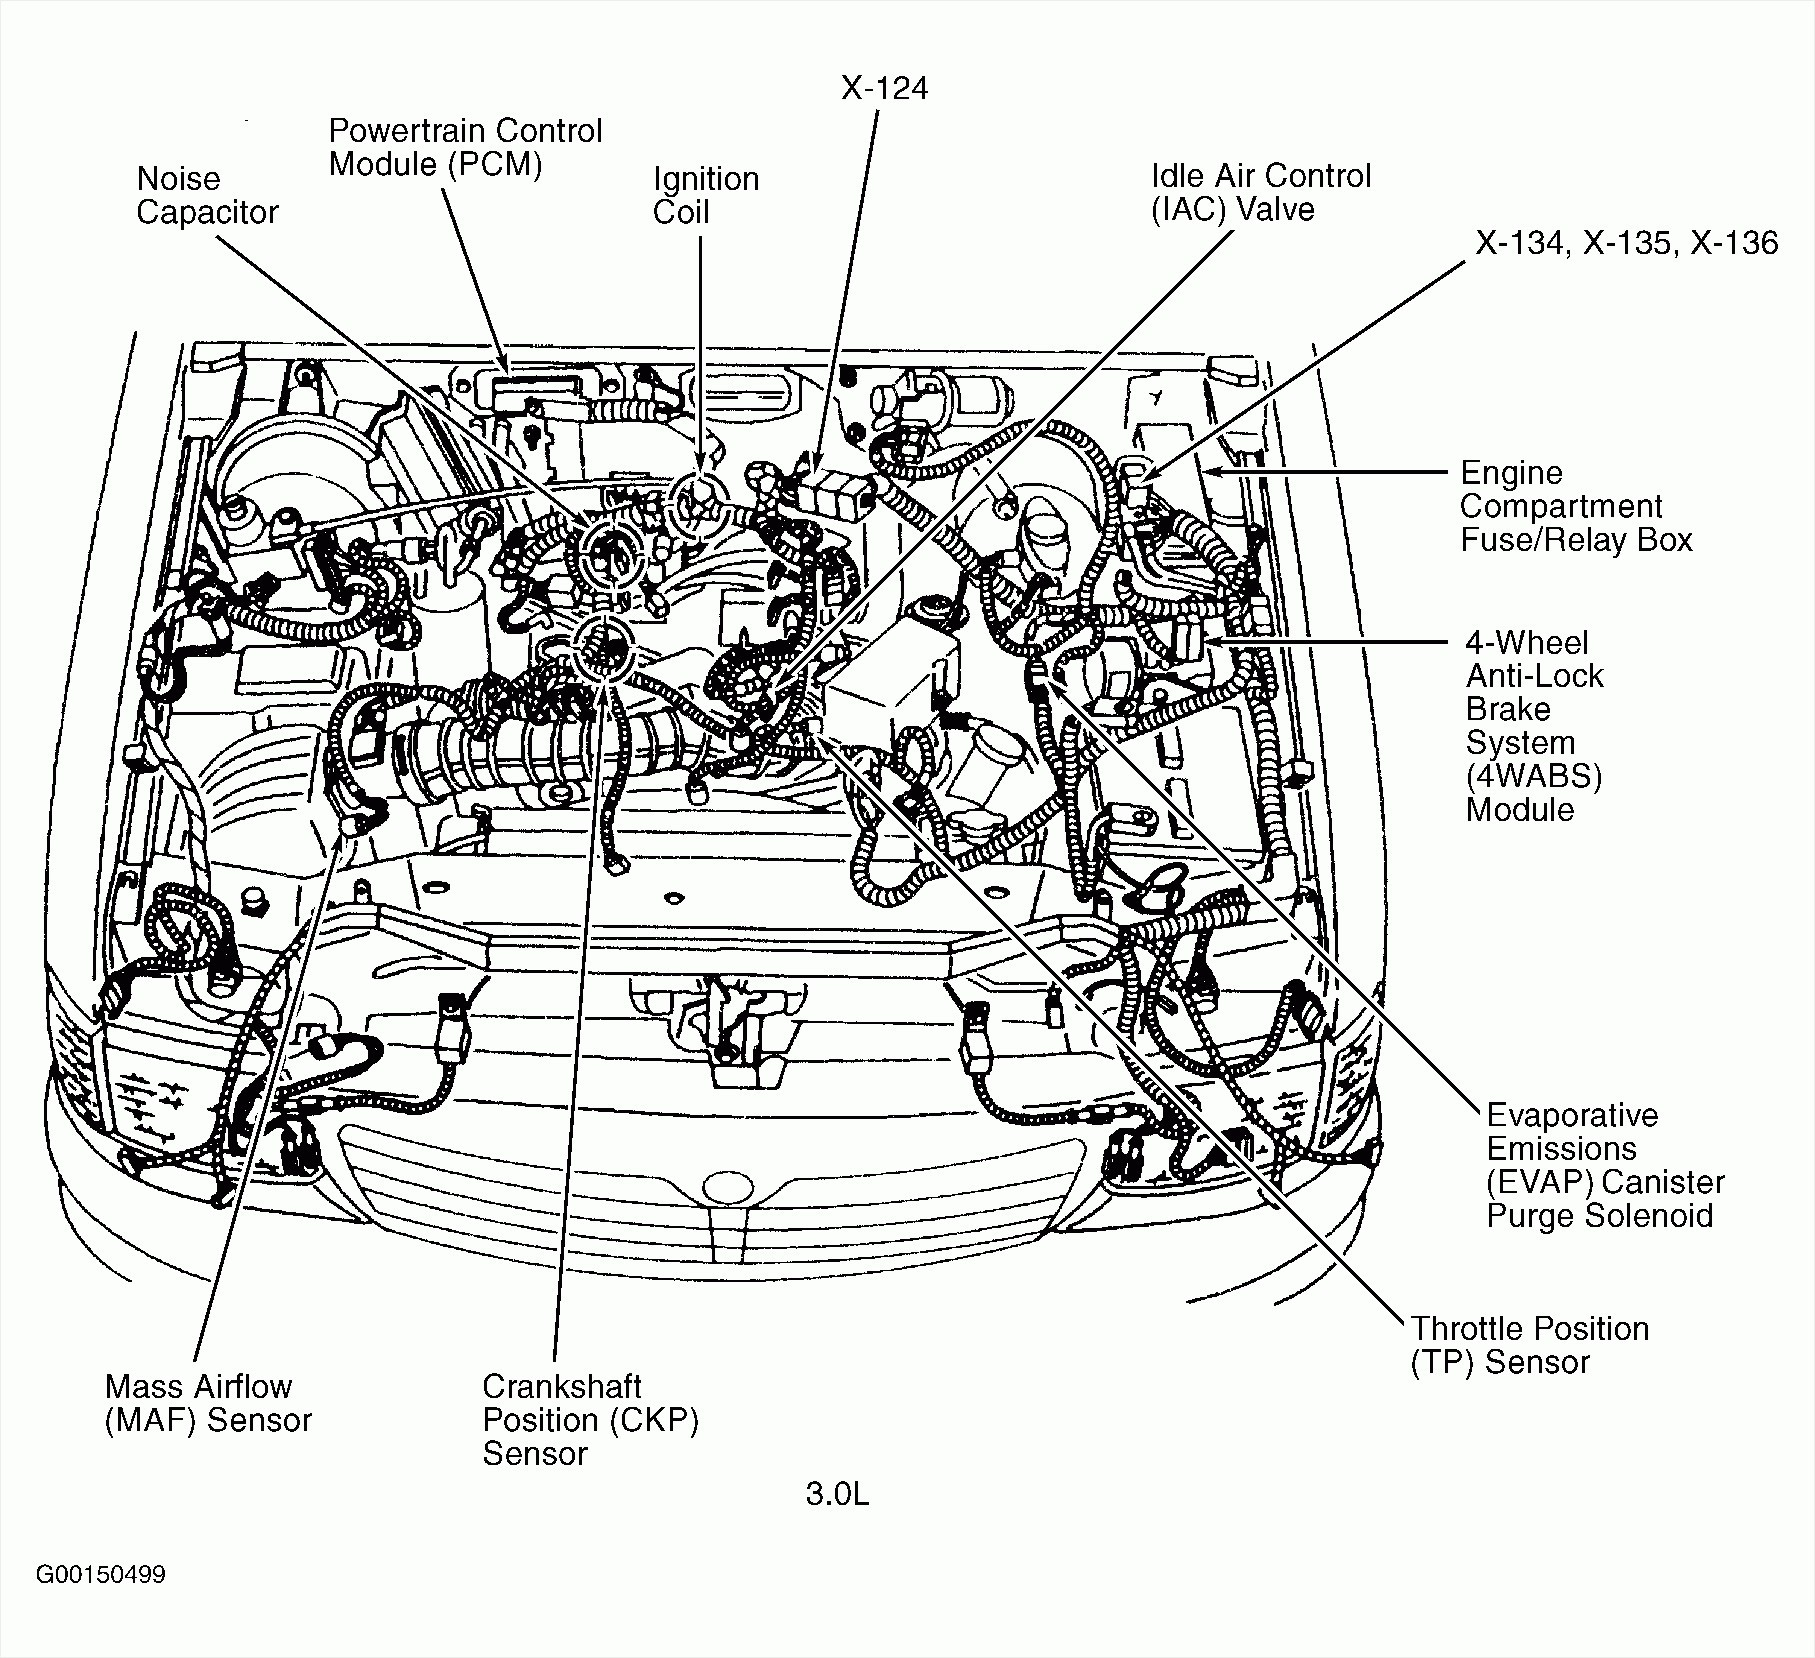 4 0 oldsmobile engine diagram circuit connection diagram \u2022 flathead engines schematic 4 0 oldsmobile engine diagram electrical wire symbol wiring rh viewdress com carrol shelby 4 0 engine land rover 4 0 engine